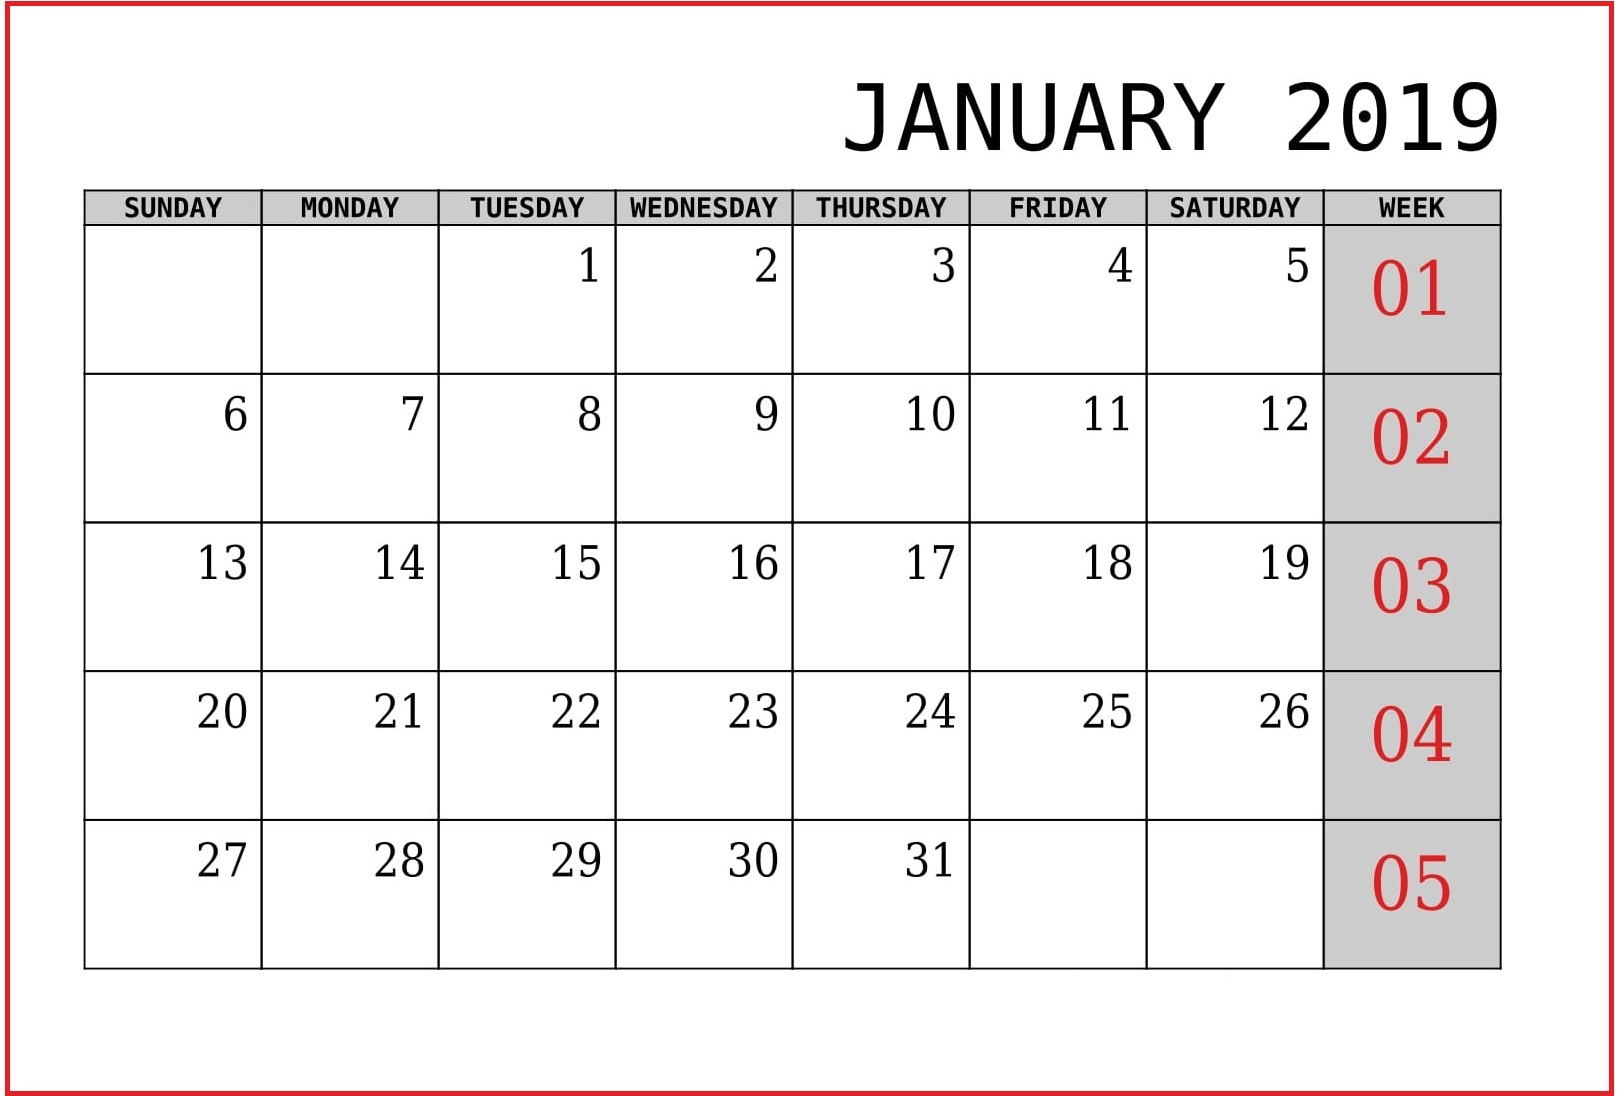 January 2019 Calendar PDF With Holidays